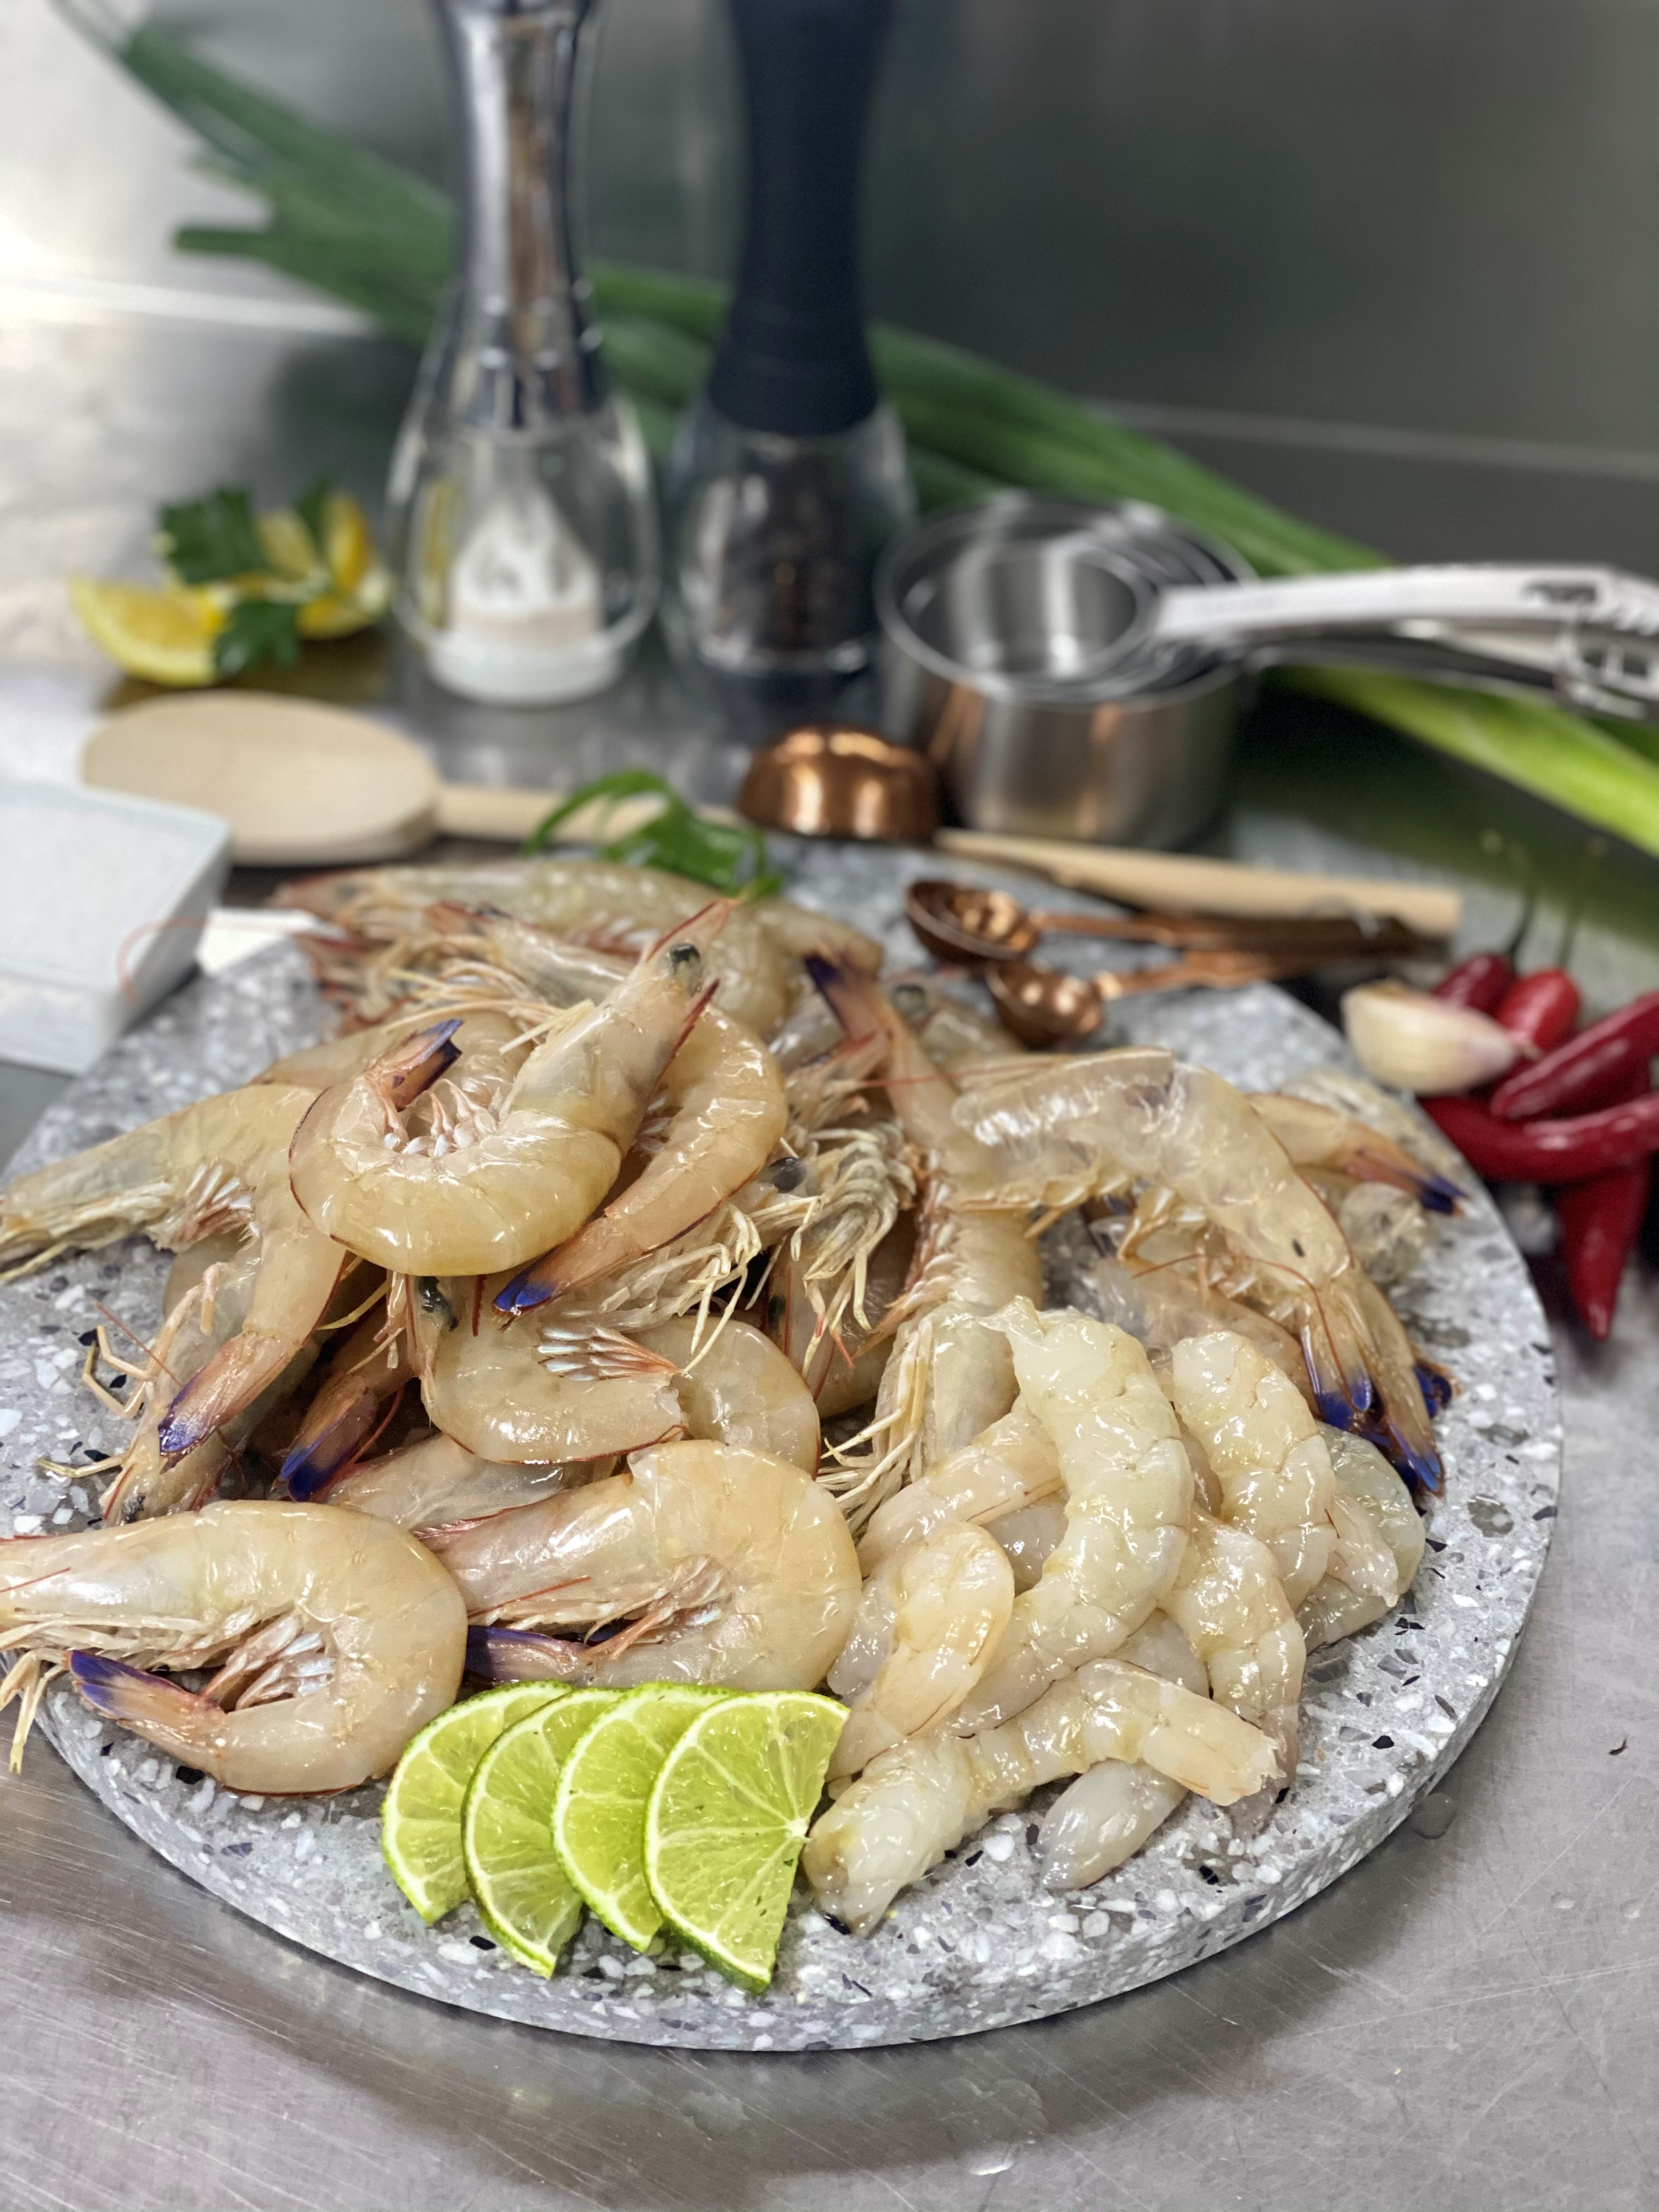 Townsville's Iconic Ingham Road Seafood is For Sale Profits $843k